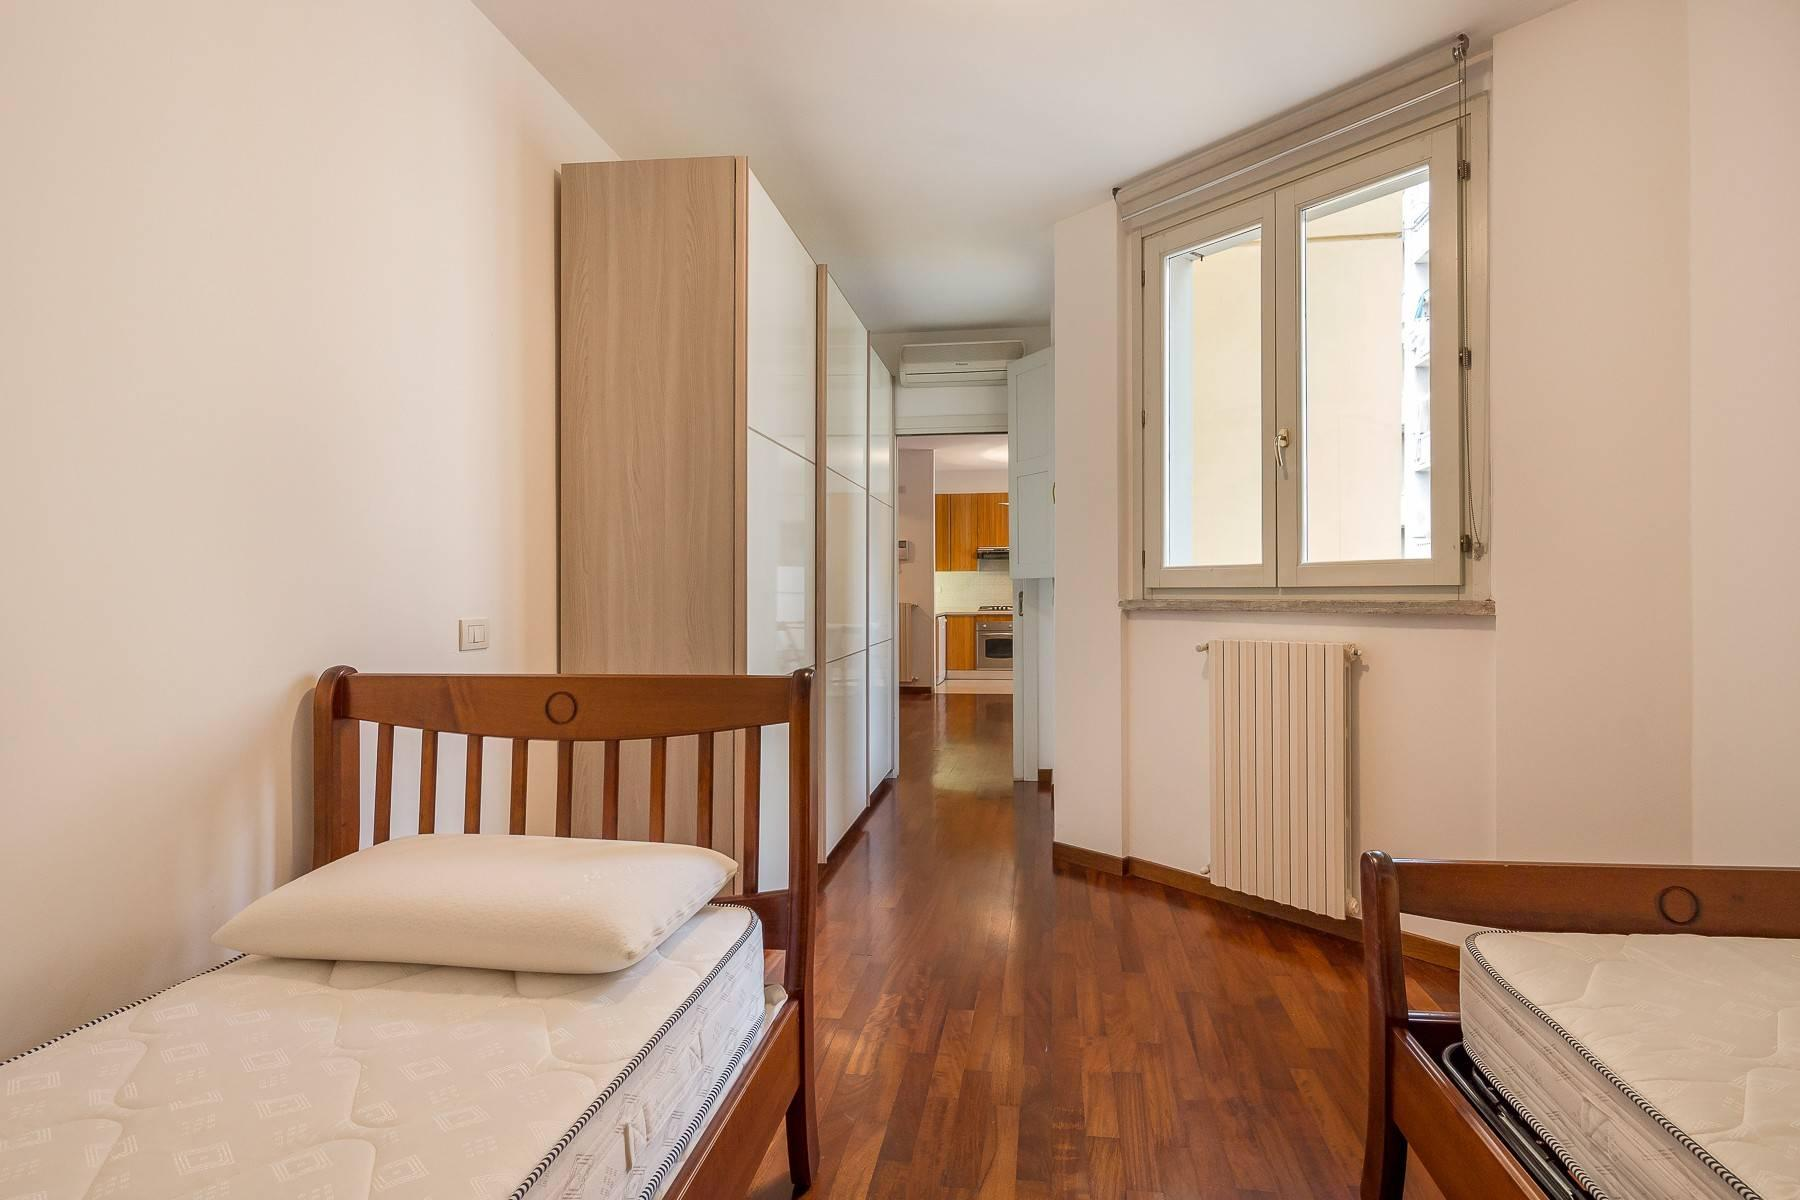 One-bedroom apartment in the Isola area - 13